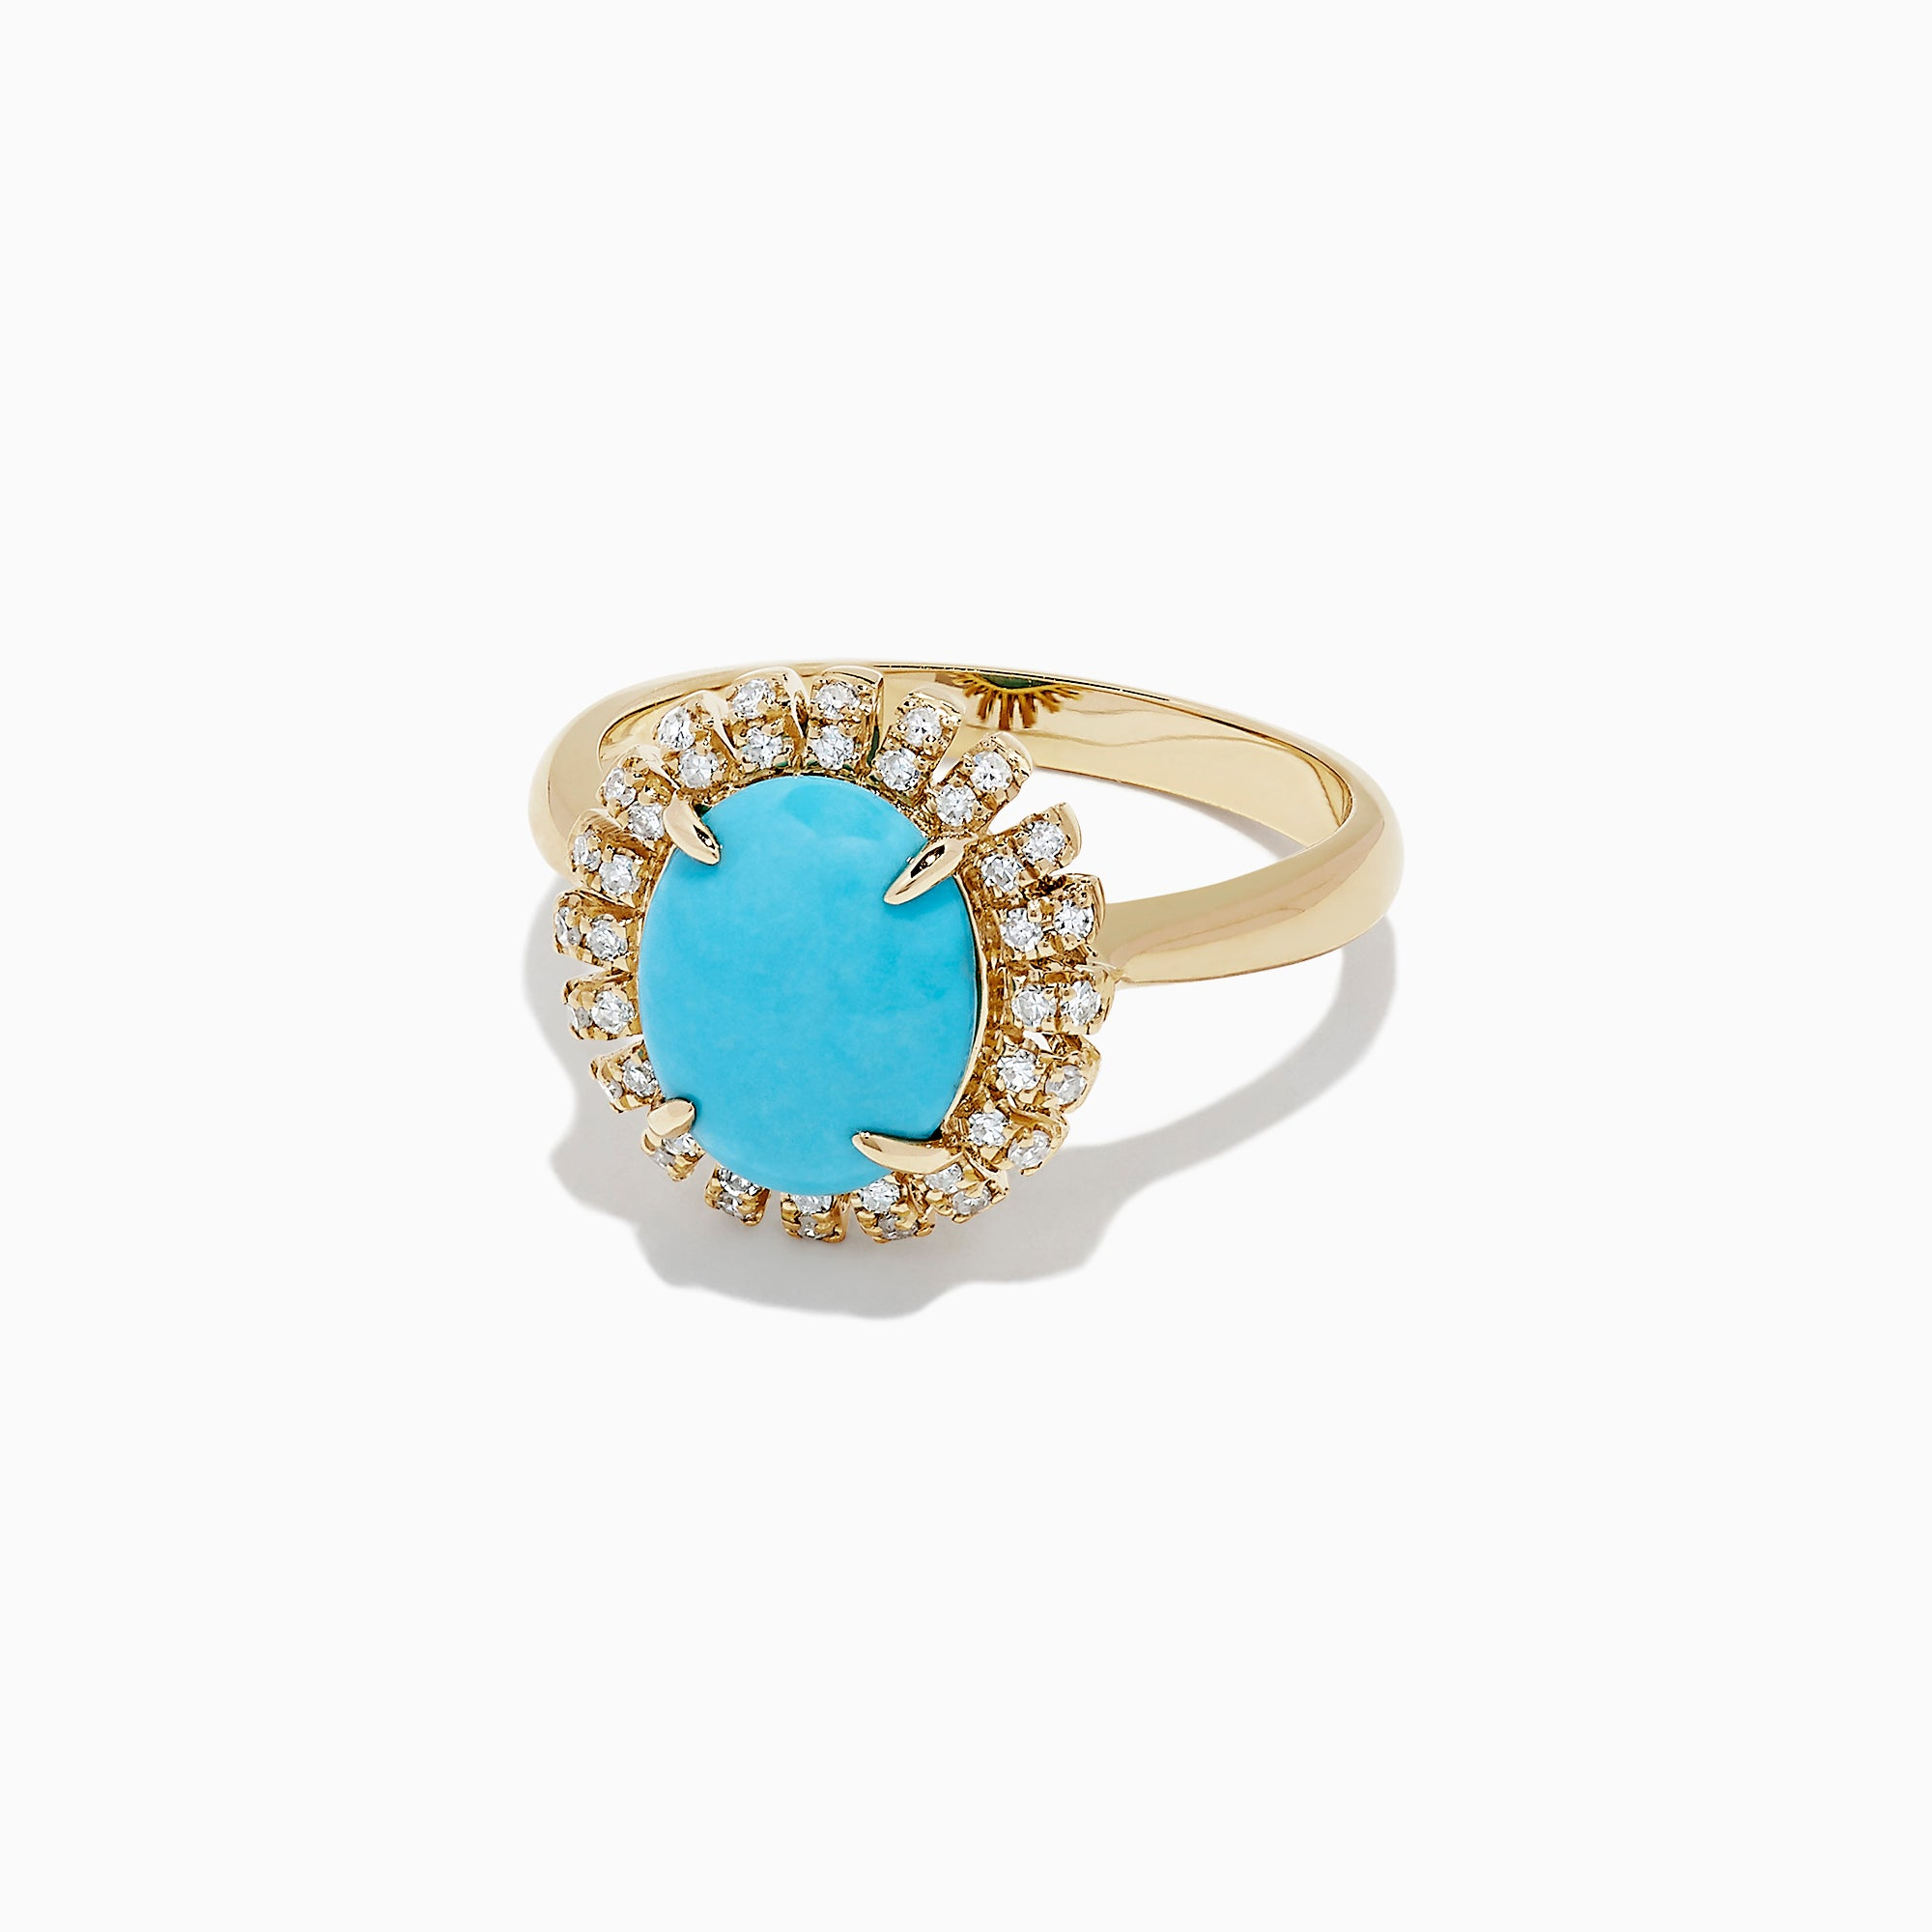 Effy 14K Yellow Gold Turquoise and Diamond Ring, 2.03 TCW